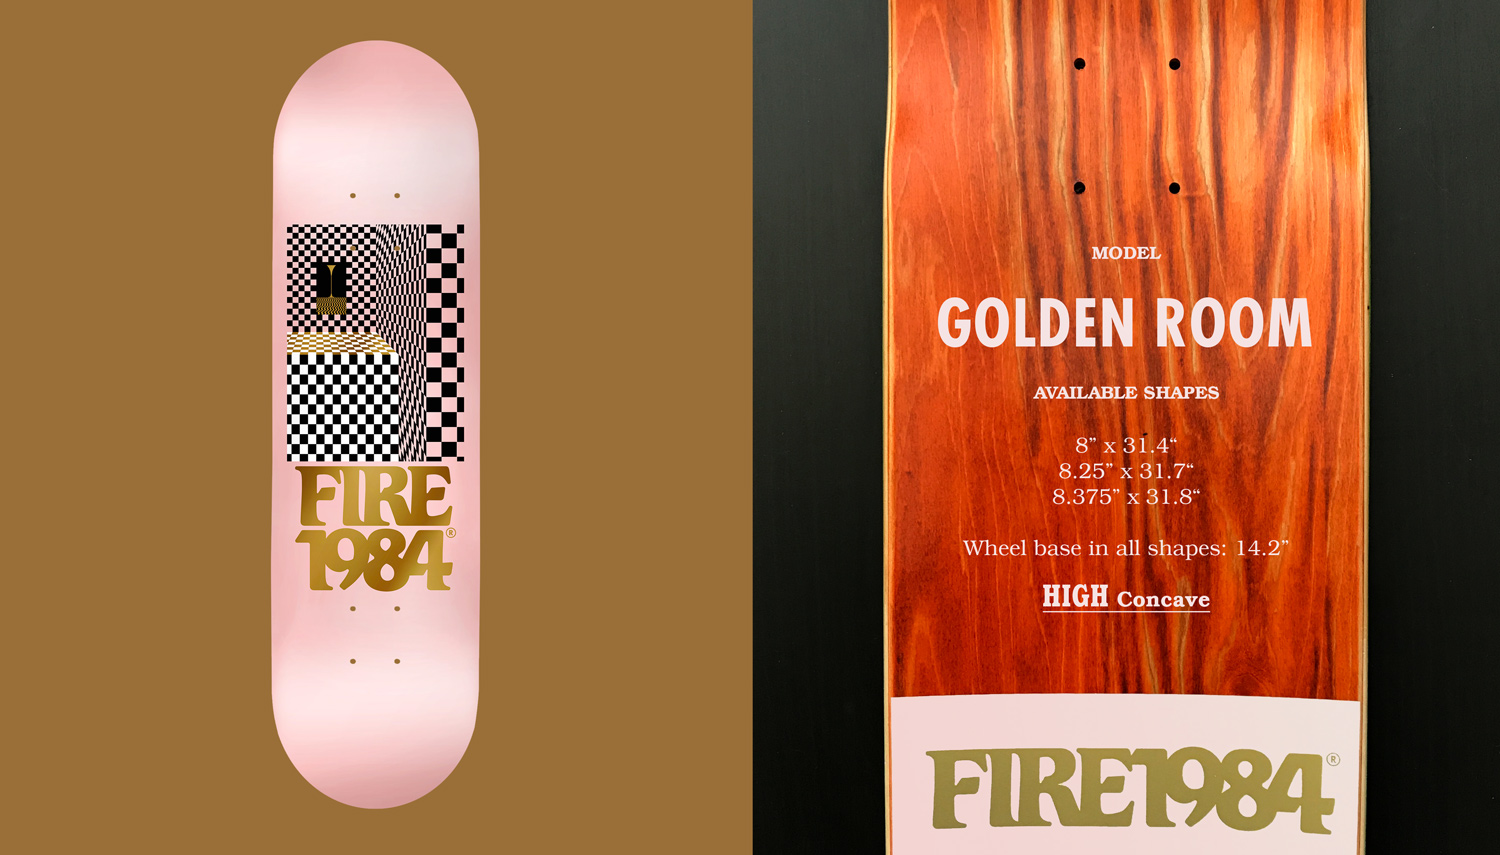 FIRE1984 catalog 20171 deck golden room